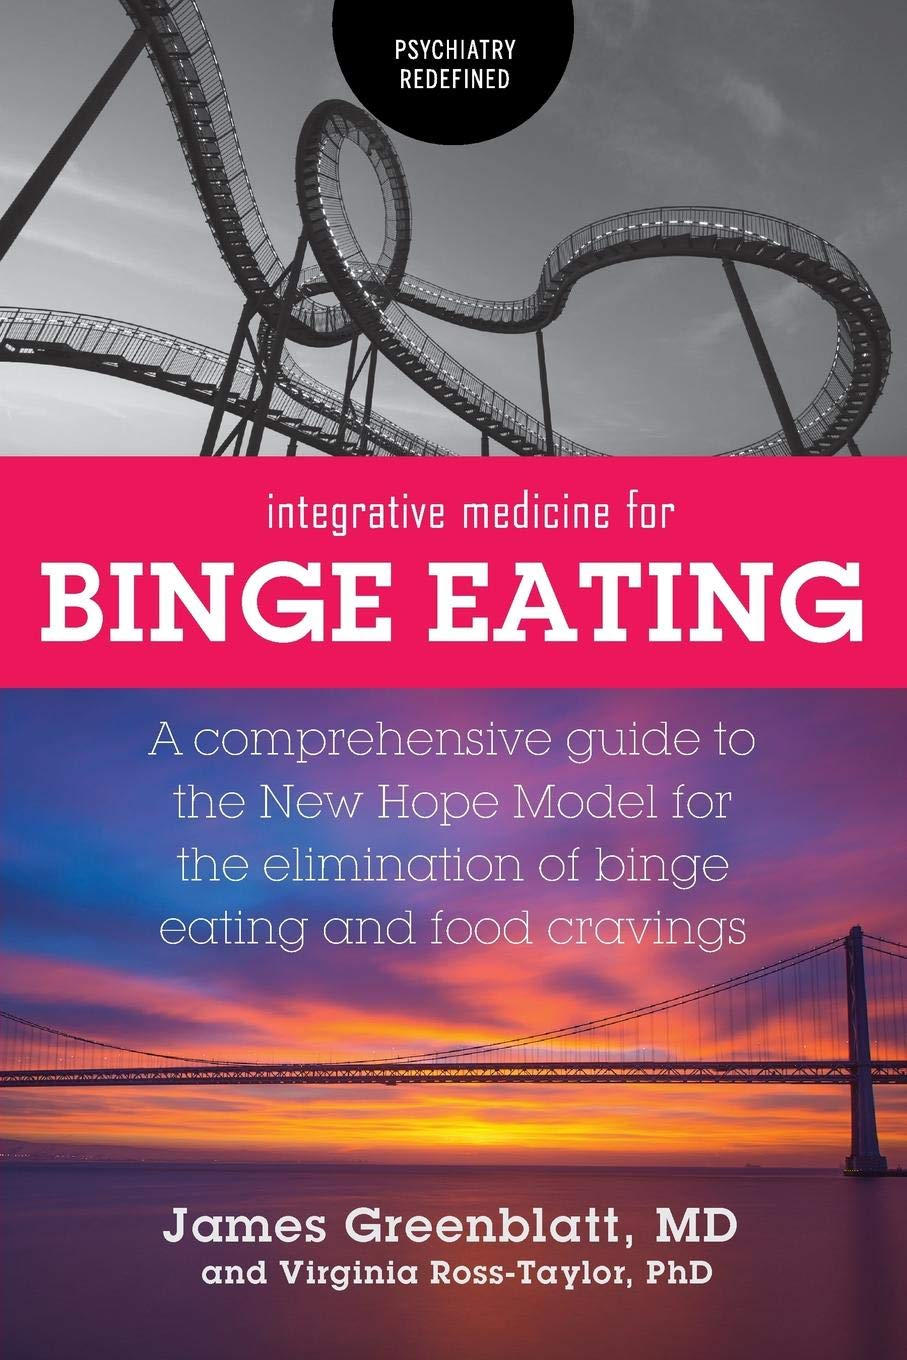 Integrative Medicine for Binge Eating: A Comprehensive Guide to the New Hope Model for the Elimination of Binge Eating and Food Cravings (Psychiatry Redefined)